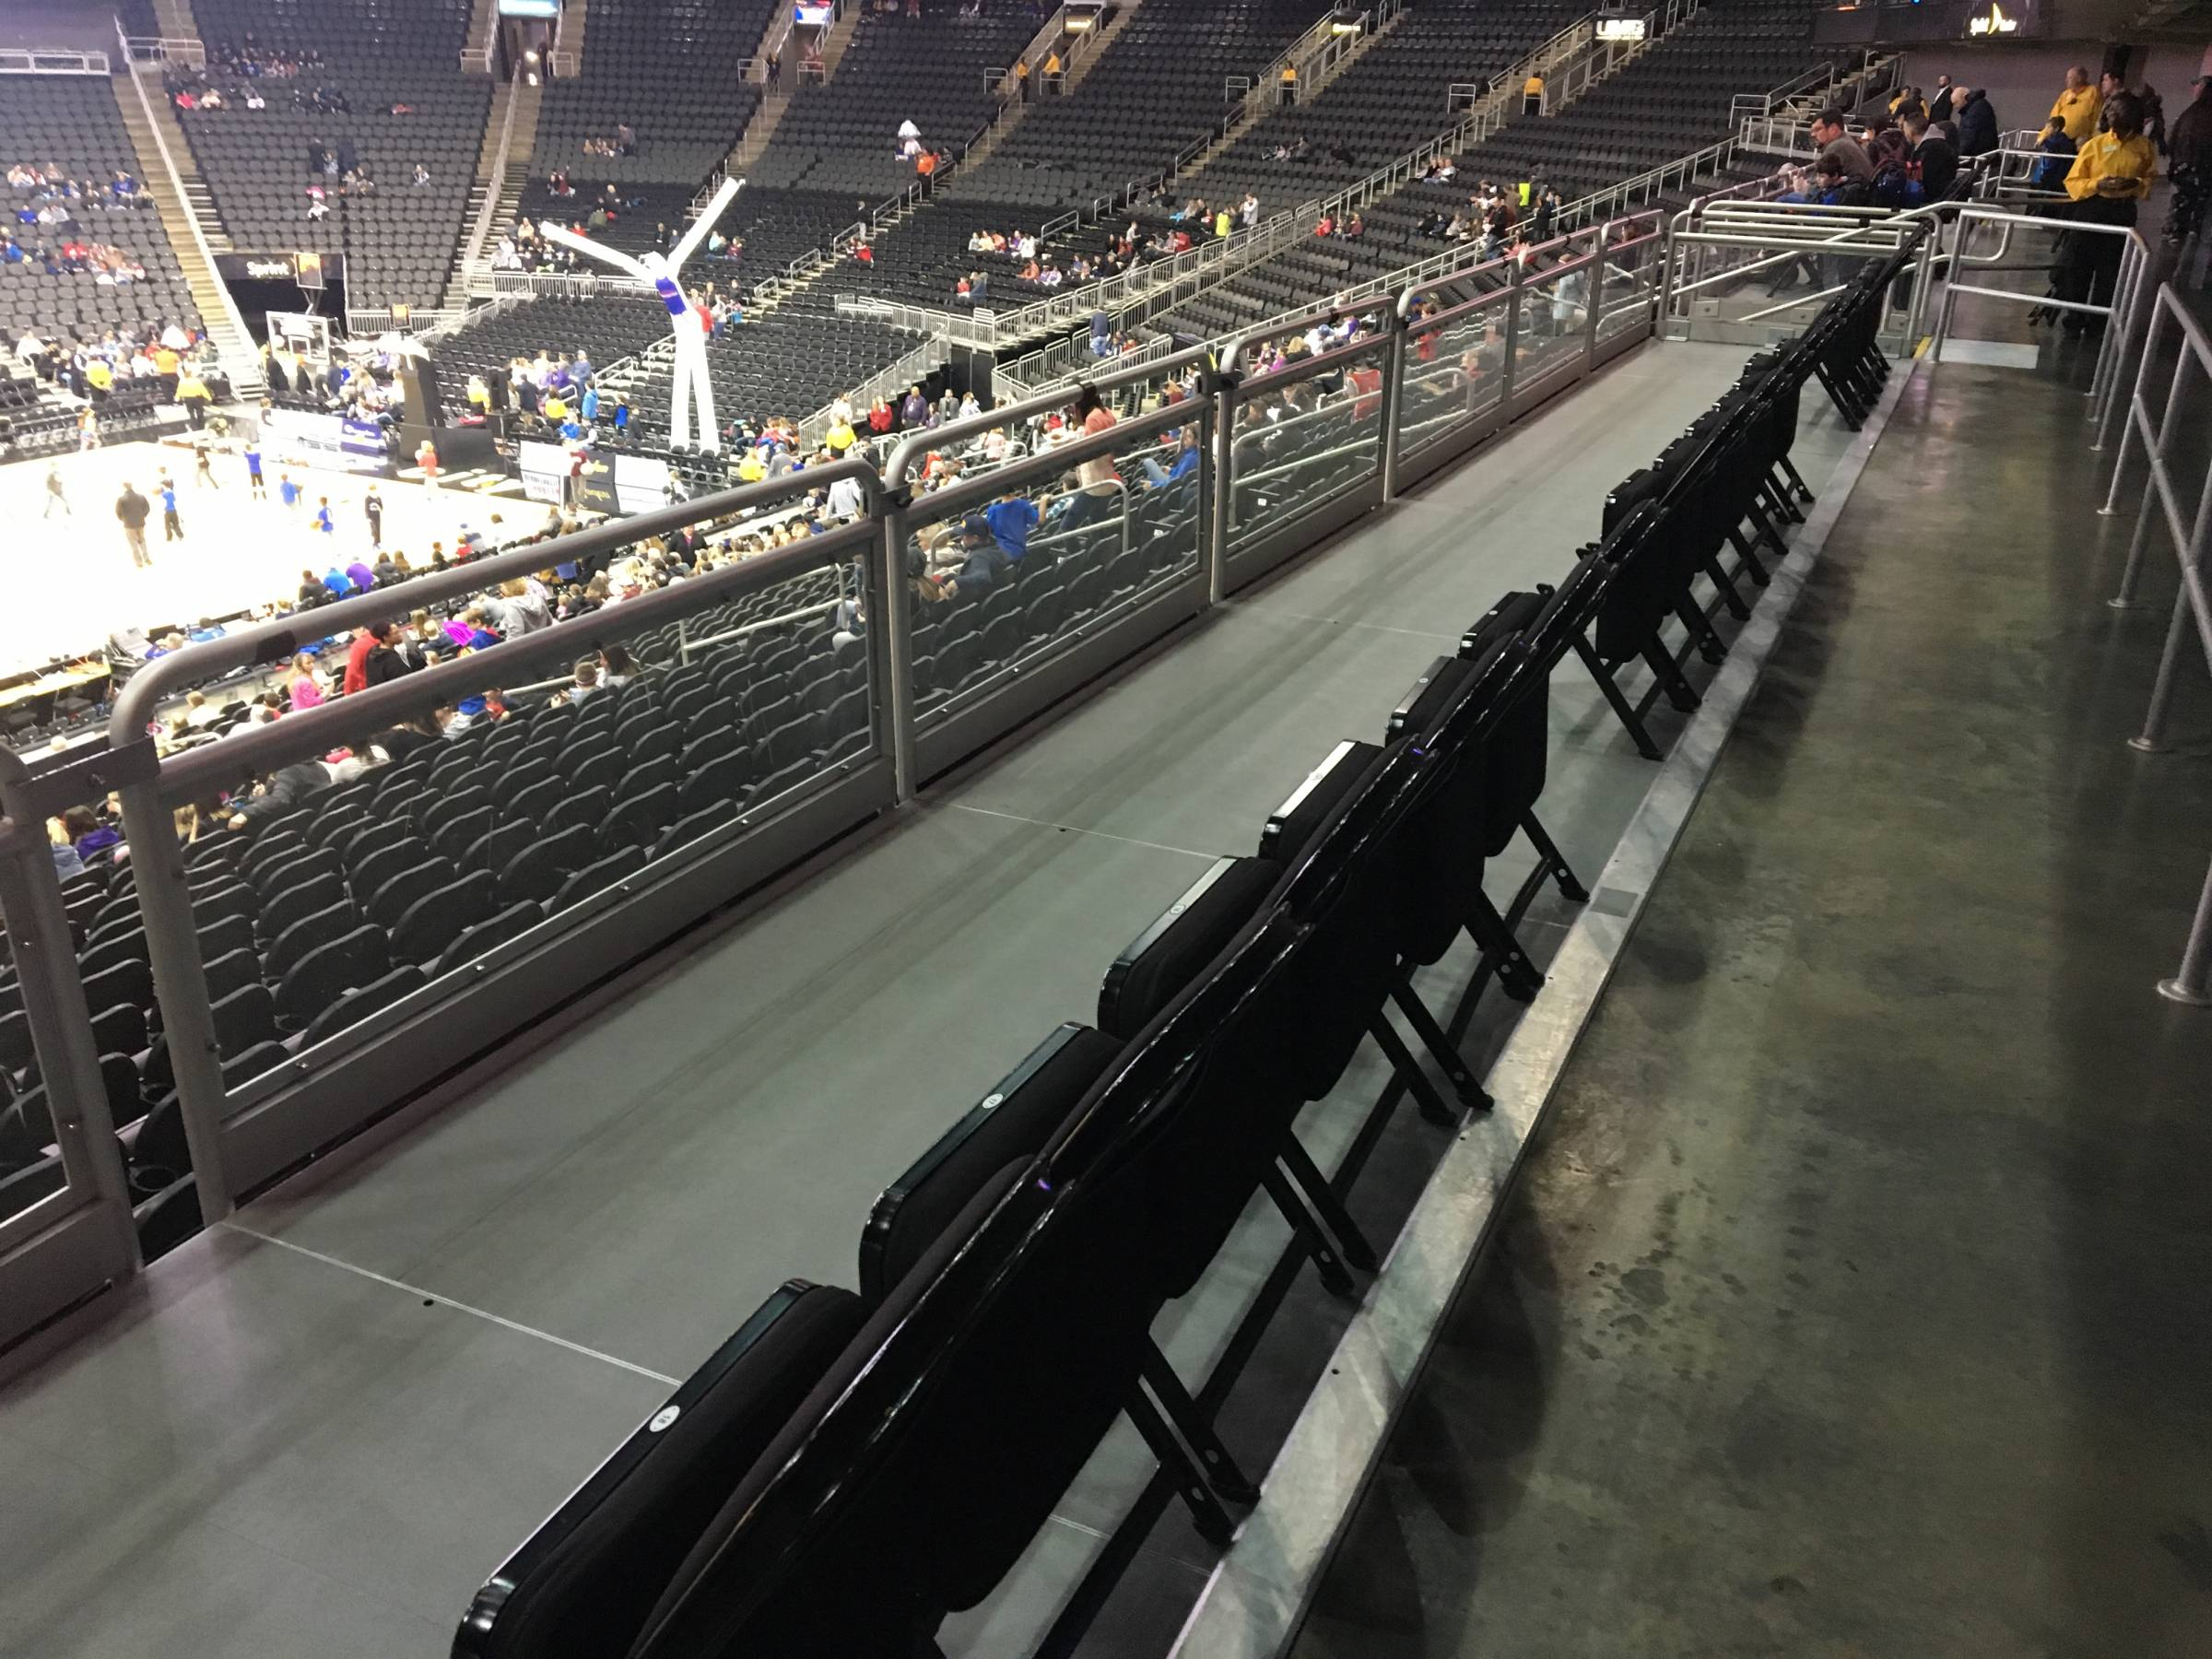 ADA Seating at Sprint Center